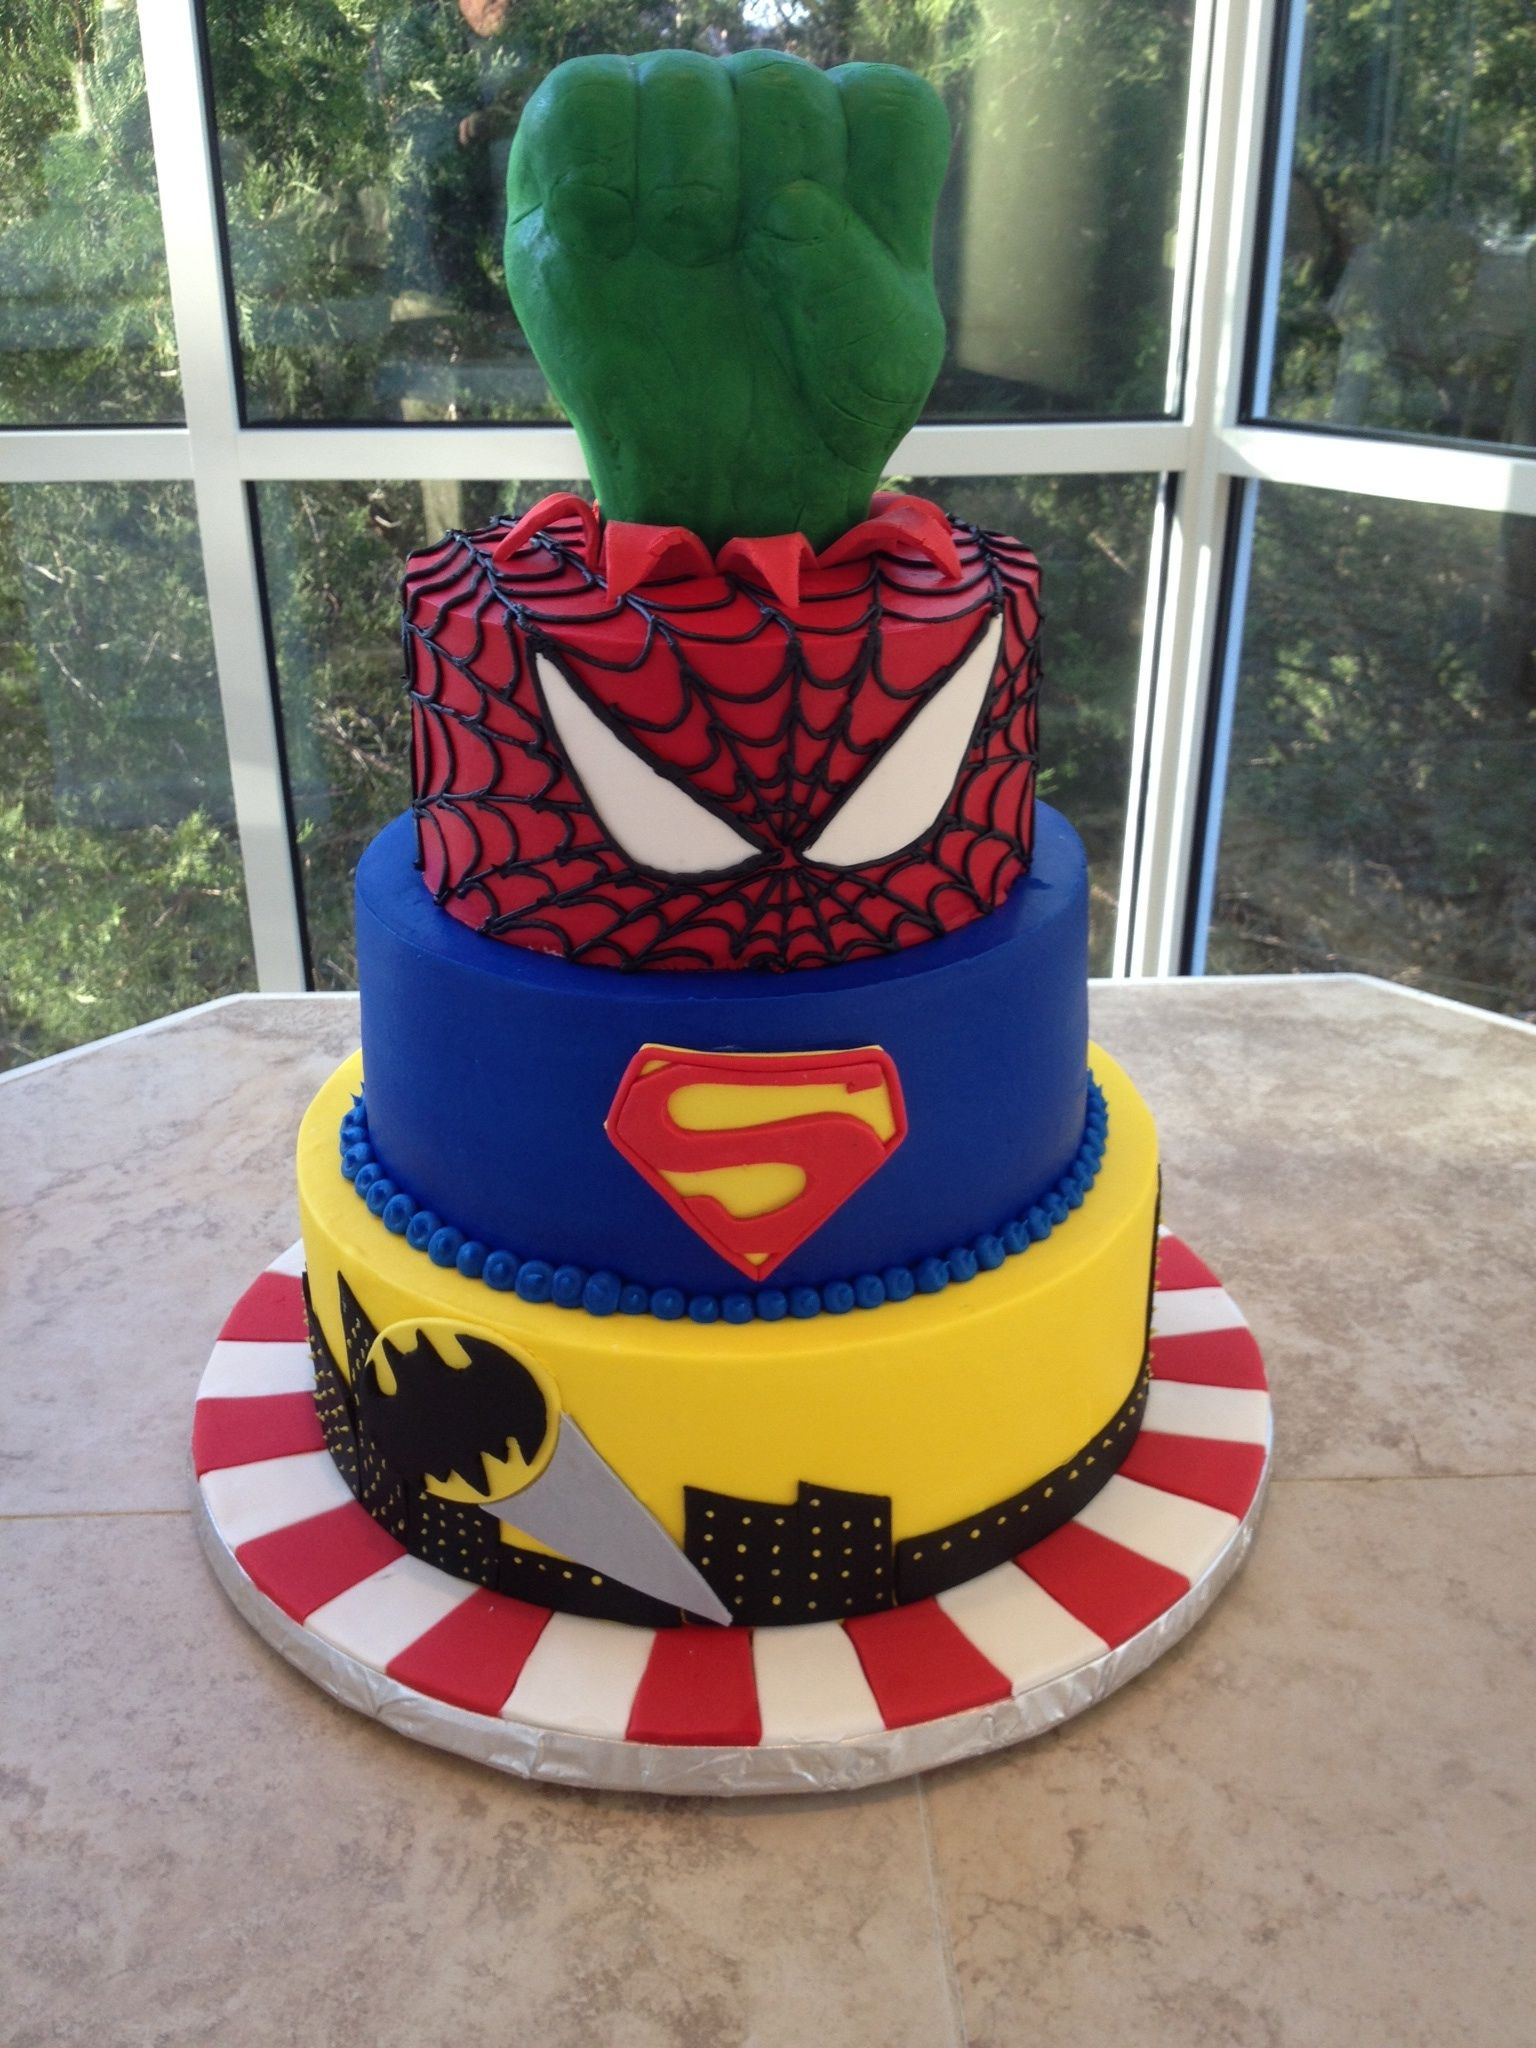 Best wedding cakes in dallas and north texas dfwbrides